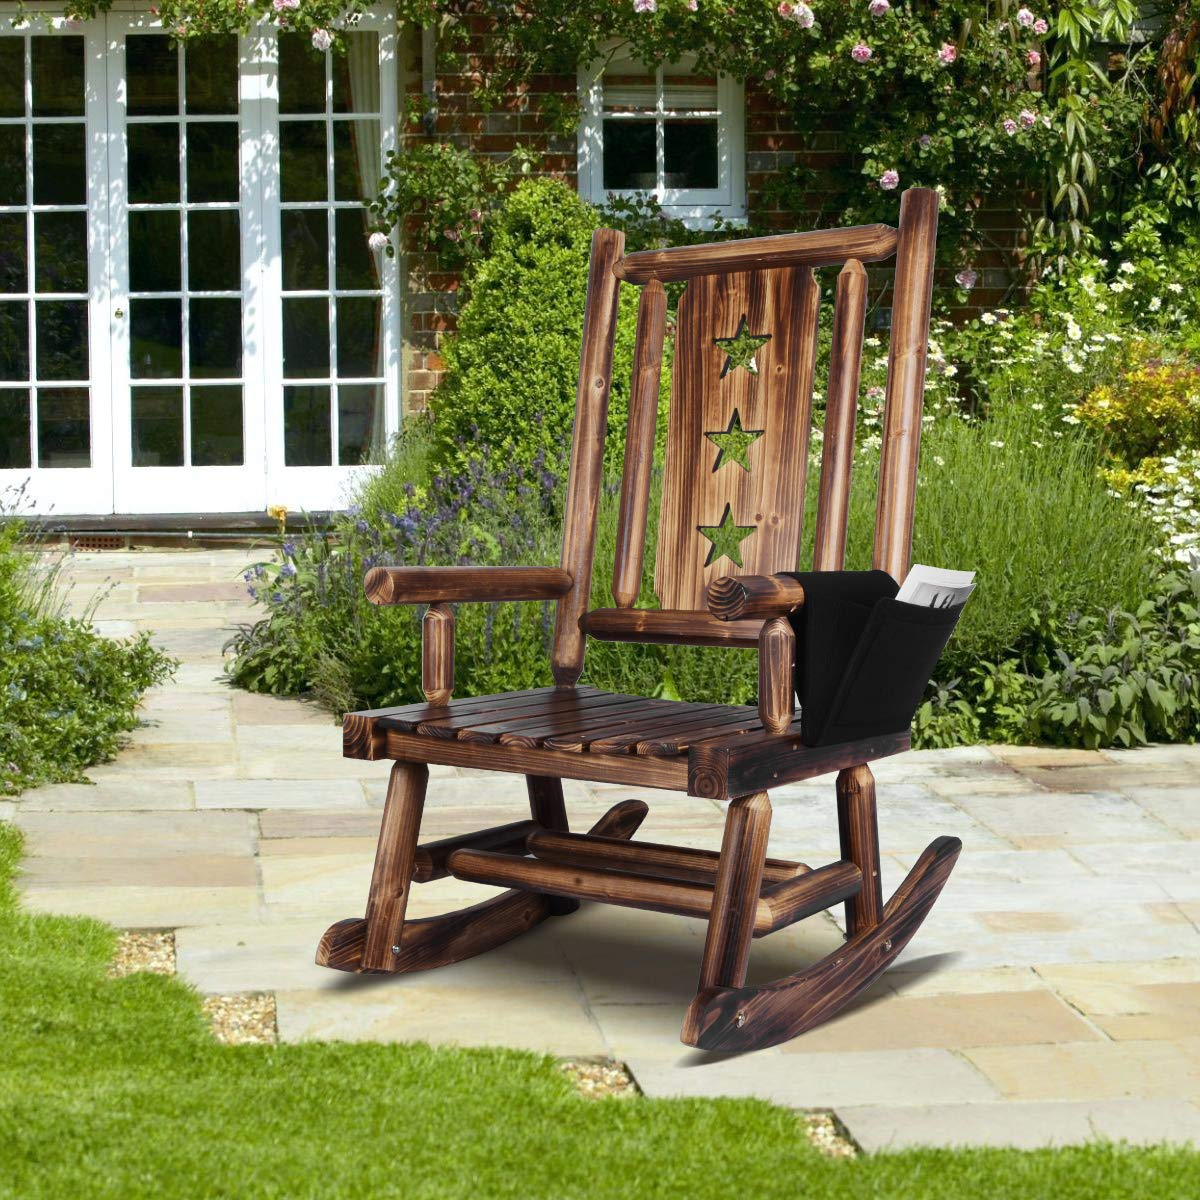 Wooden Rocking Chair for Porch - Outdoor Rustic Rocker Chair with Armrest Detachable Storage Bag and Star by XCSOURCE